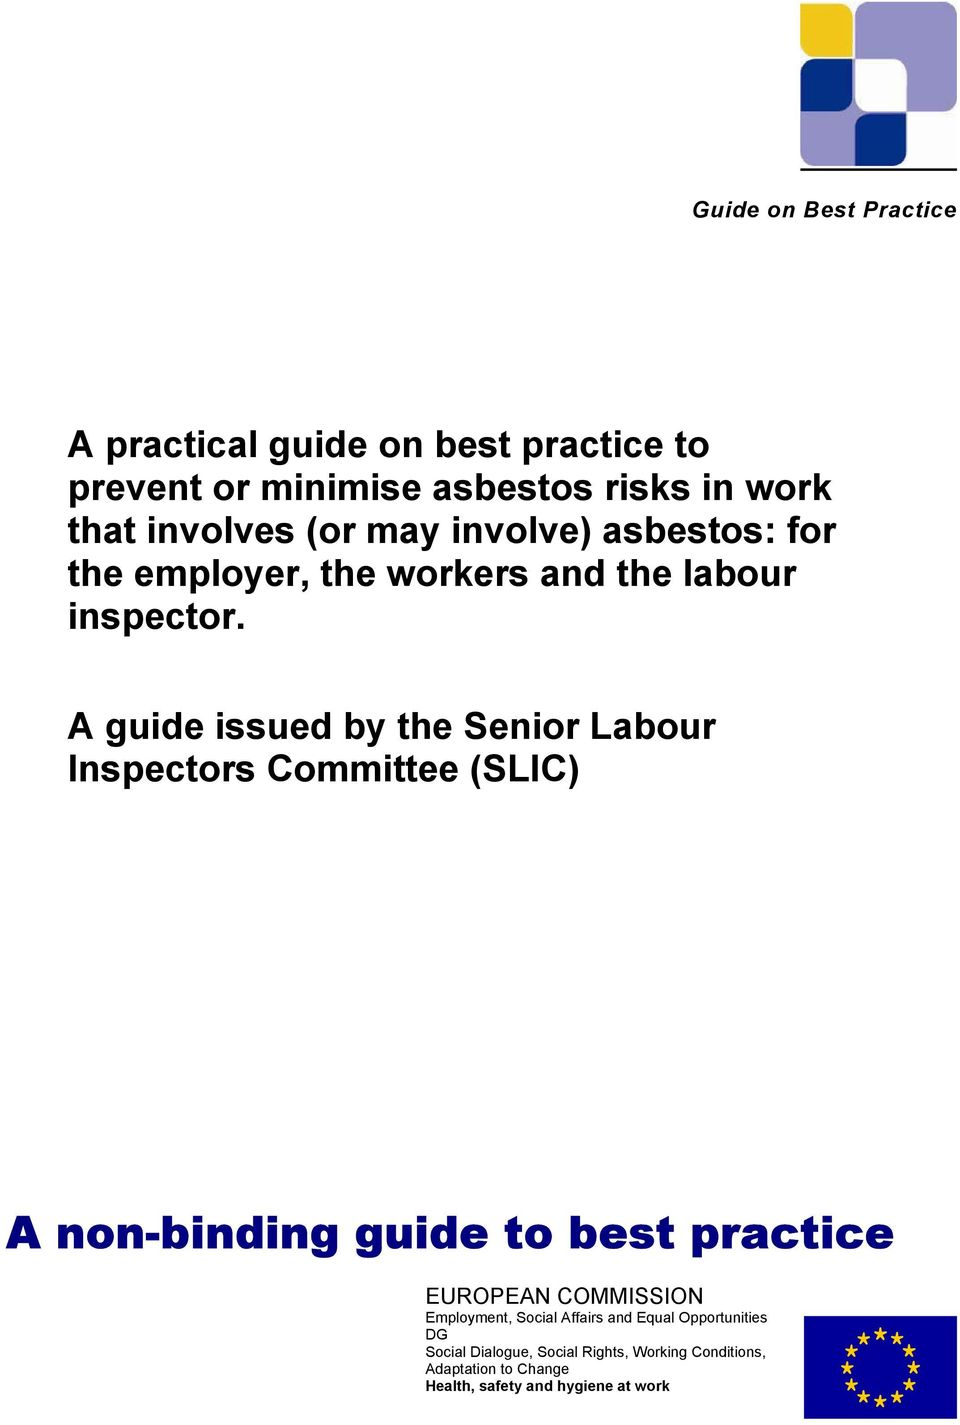 A guide issued by the Senior Labour Inspectors Committee (SLIC) A non-binding guide to best practice EUROPEAN COMMISSION